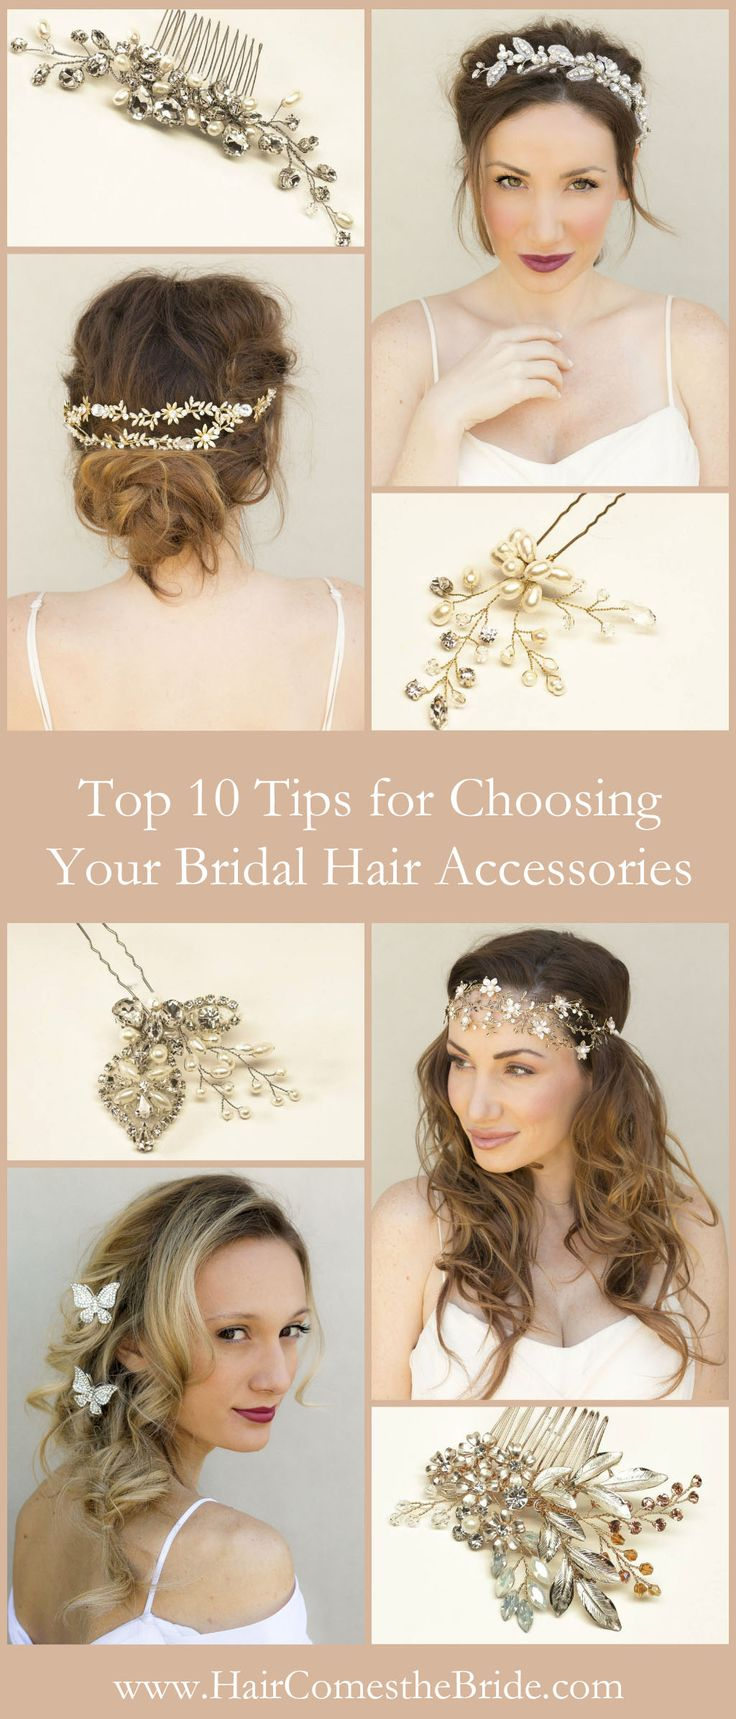 Top 10 Tips for Choosing Your Bridal Hair Accessories by Hair Comes the Bride